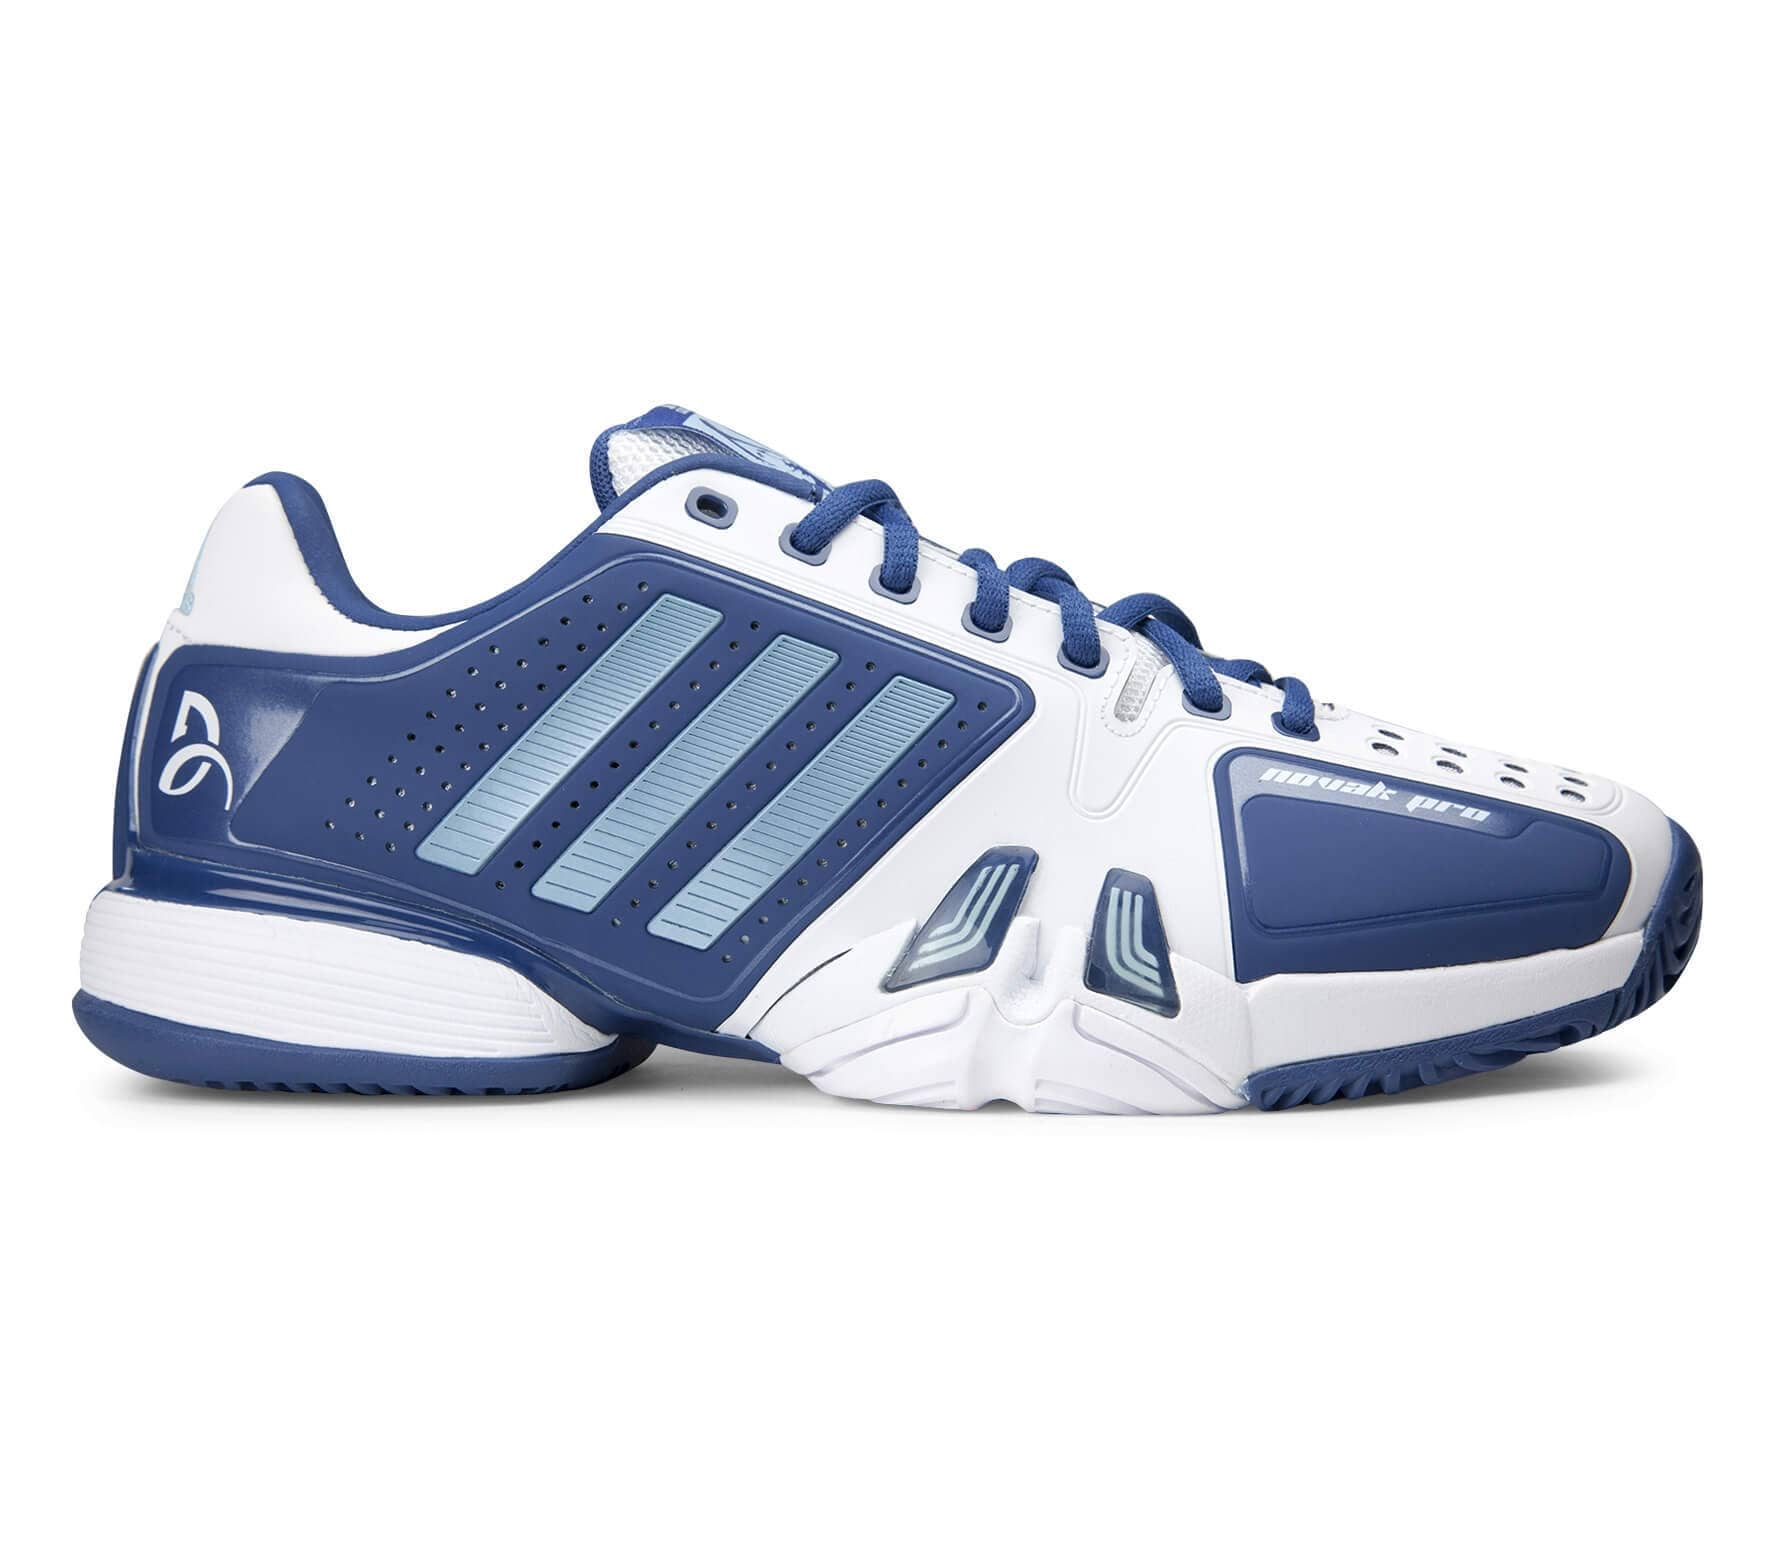 the latest 7fc50 c9669 Adidas - Novak Djokovic Pro Hommes Chaussure de tennis (bleu blanc)